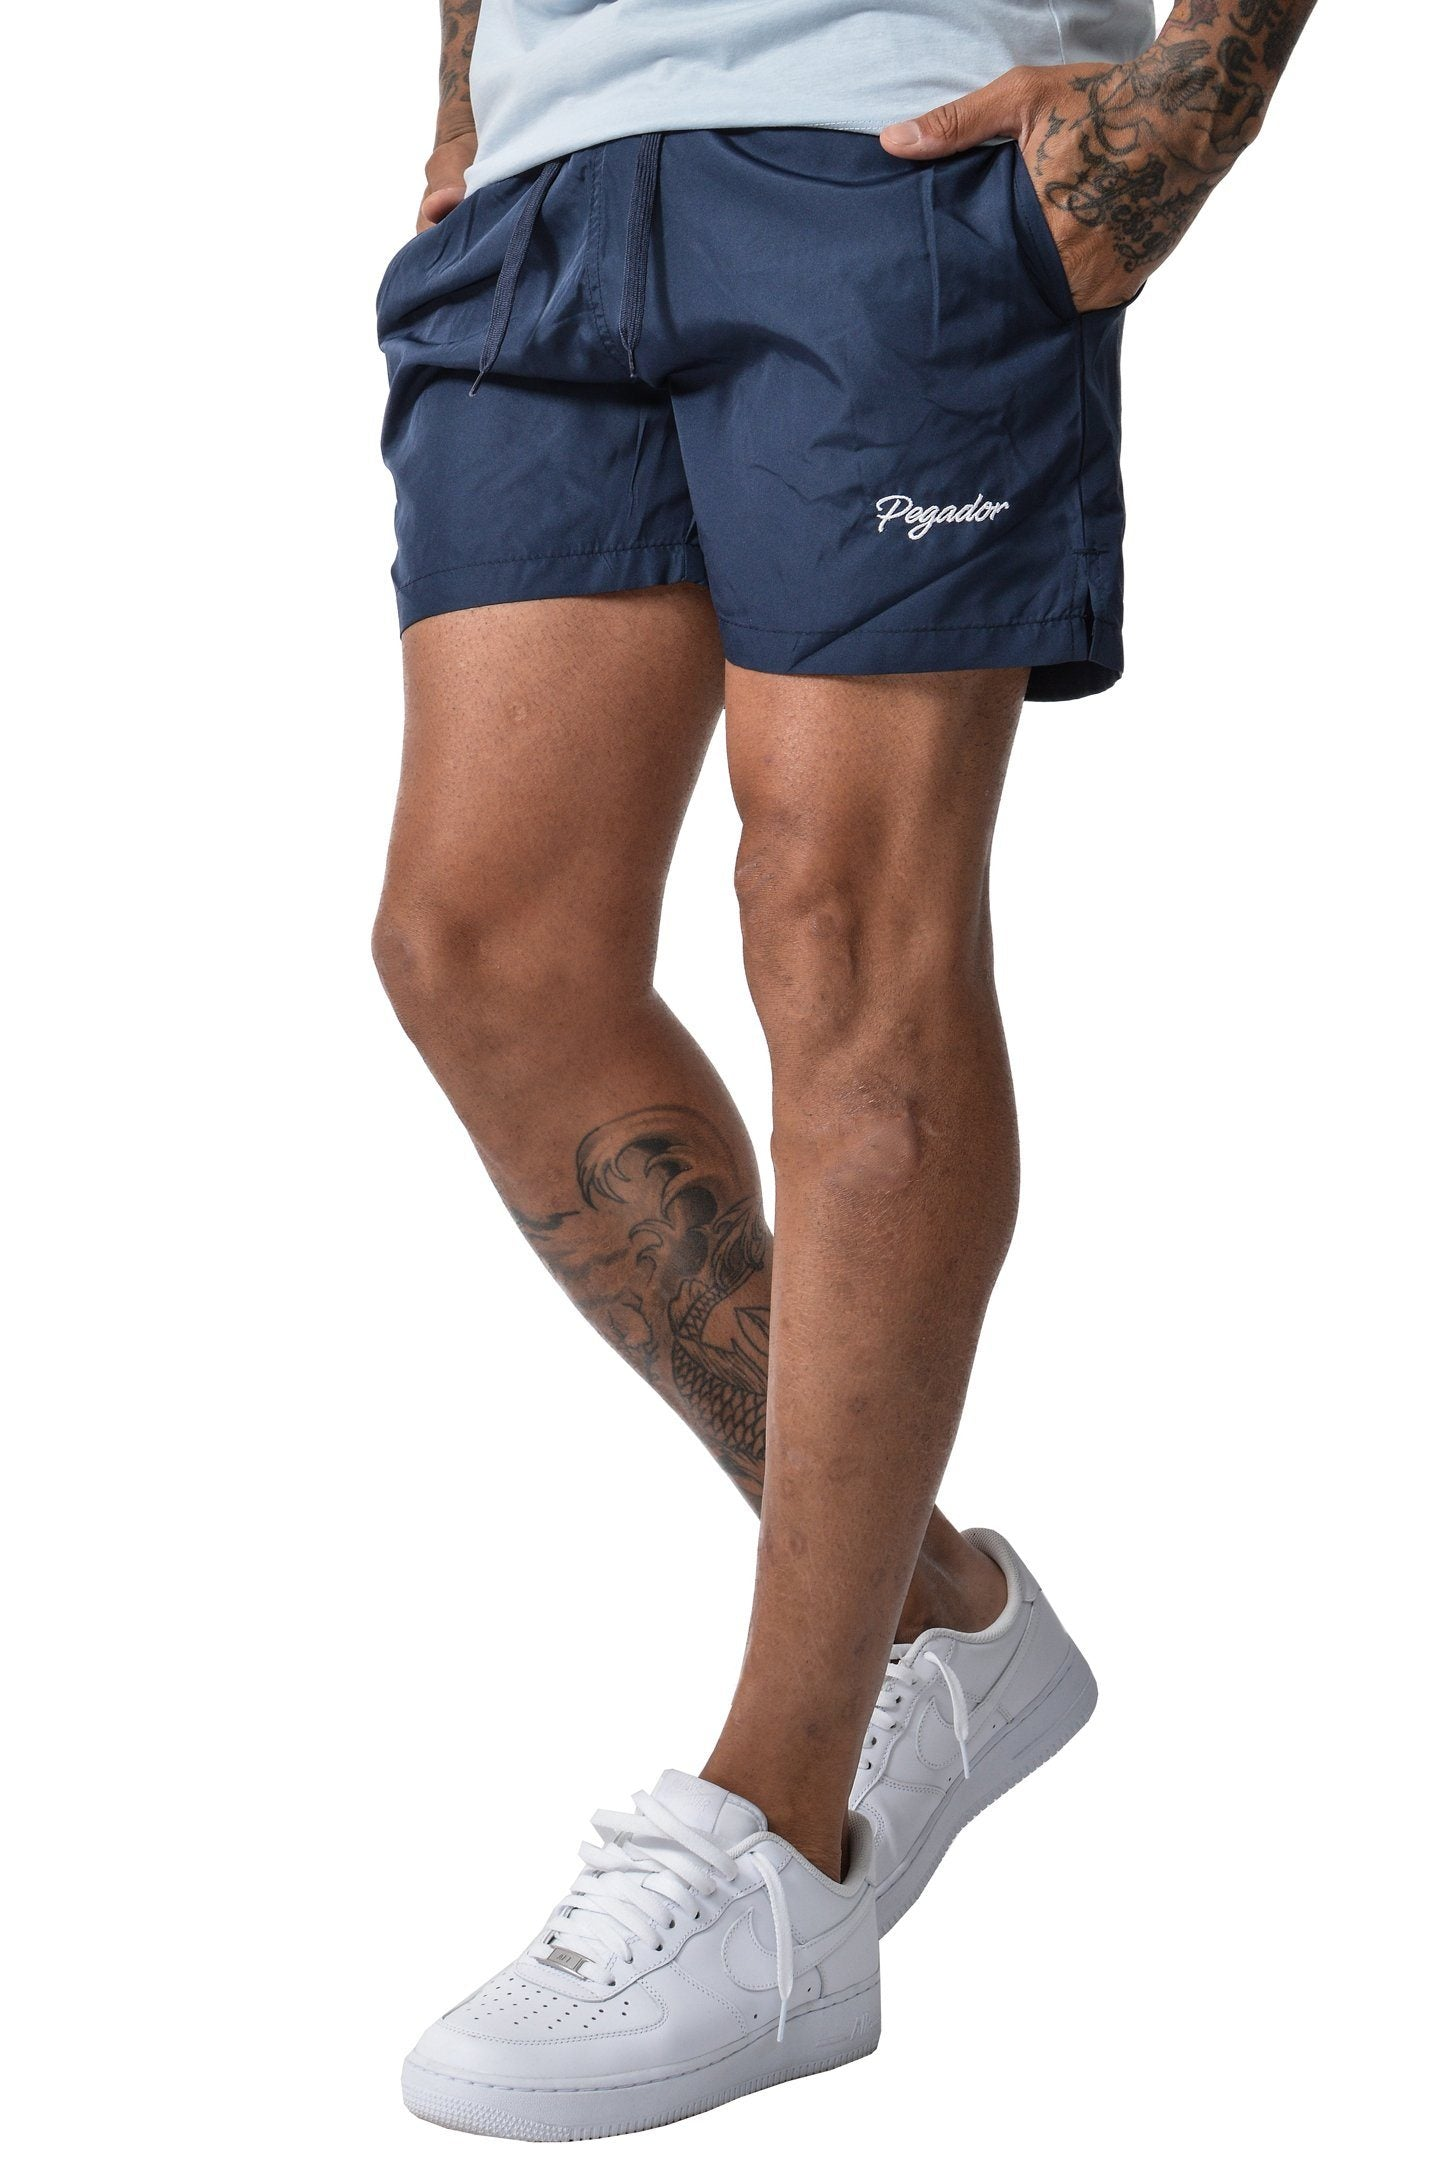 Aron Swimshorts Navy - PEGADOR - Dominate the Hype